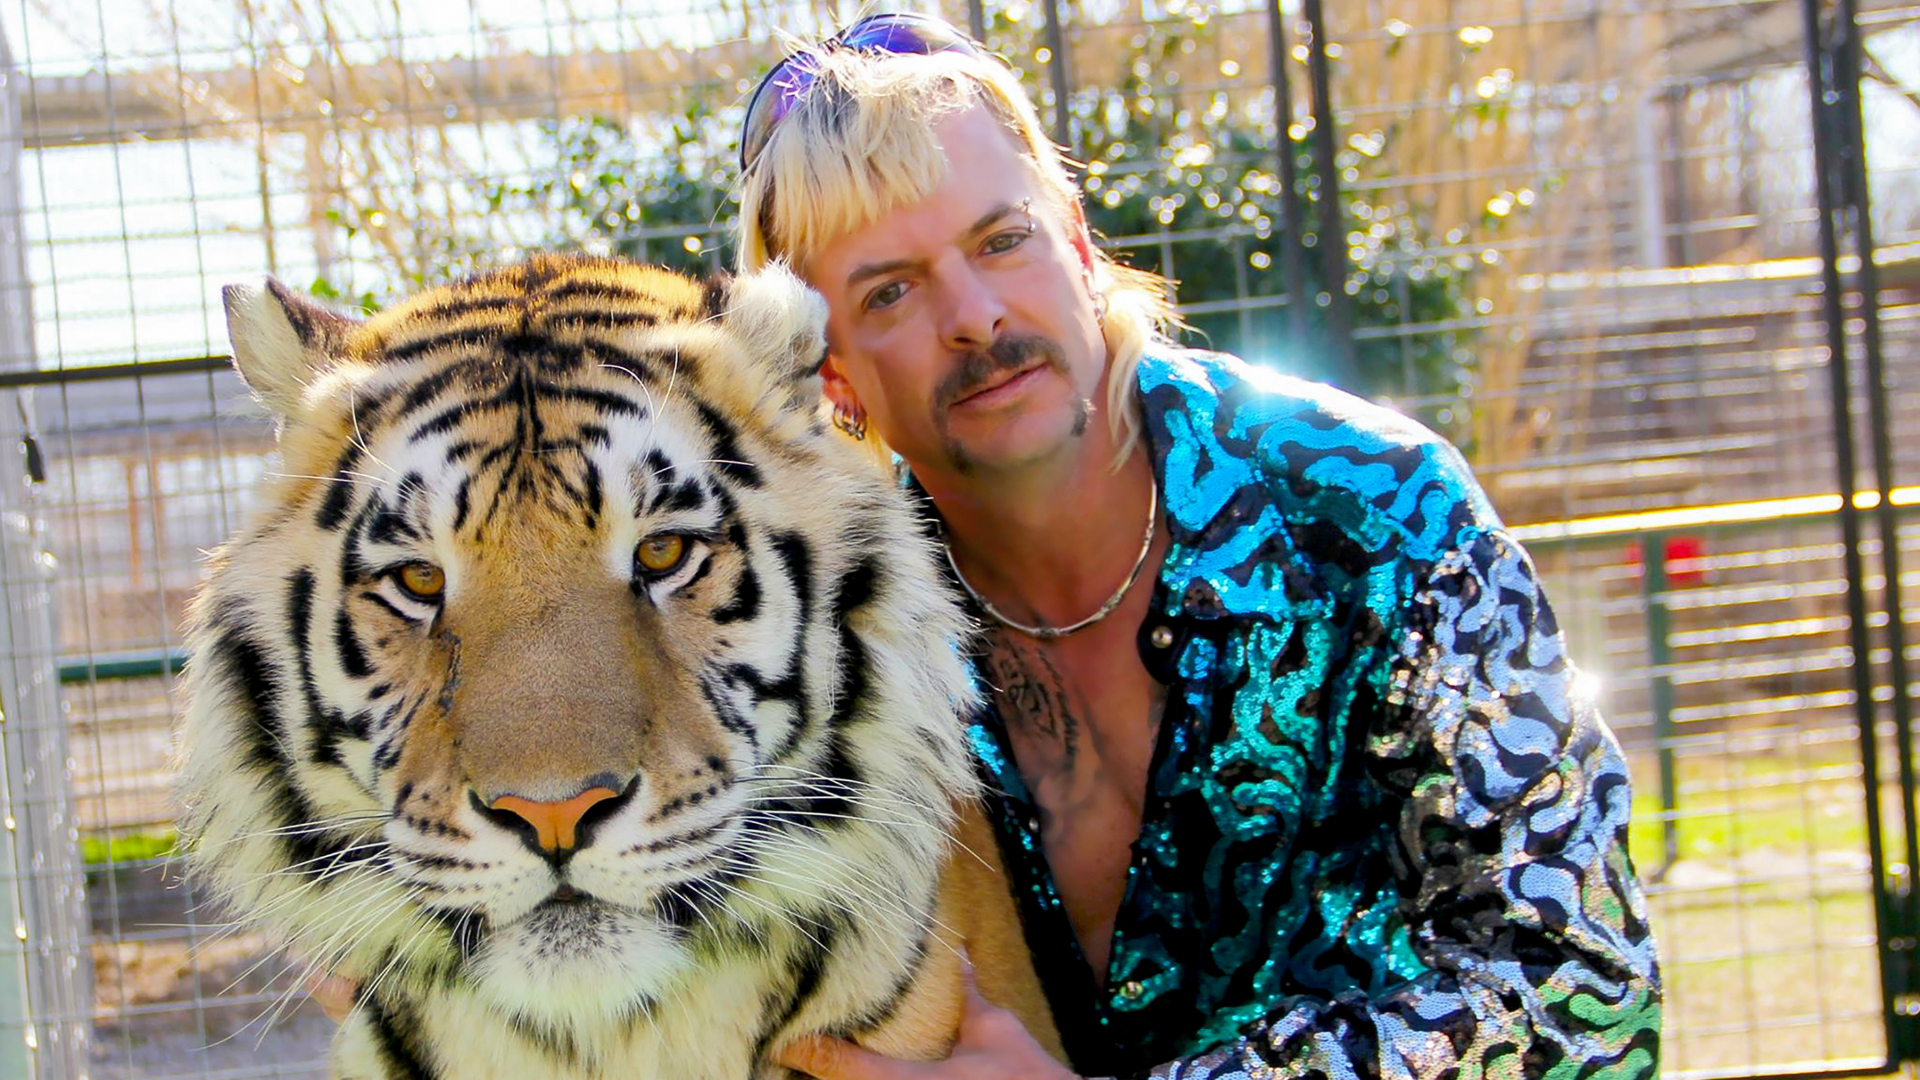 Video Shows Joe Exotic Ranting About Why He Can't Say the N-Word: 'Is This Discrimination?'